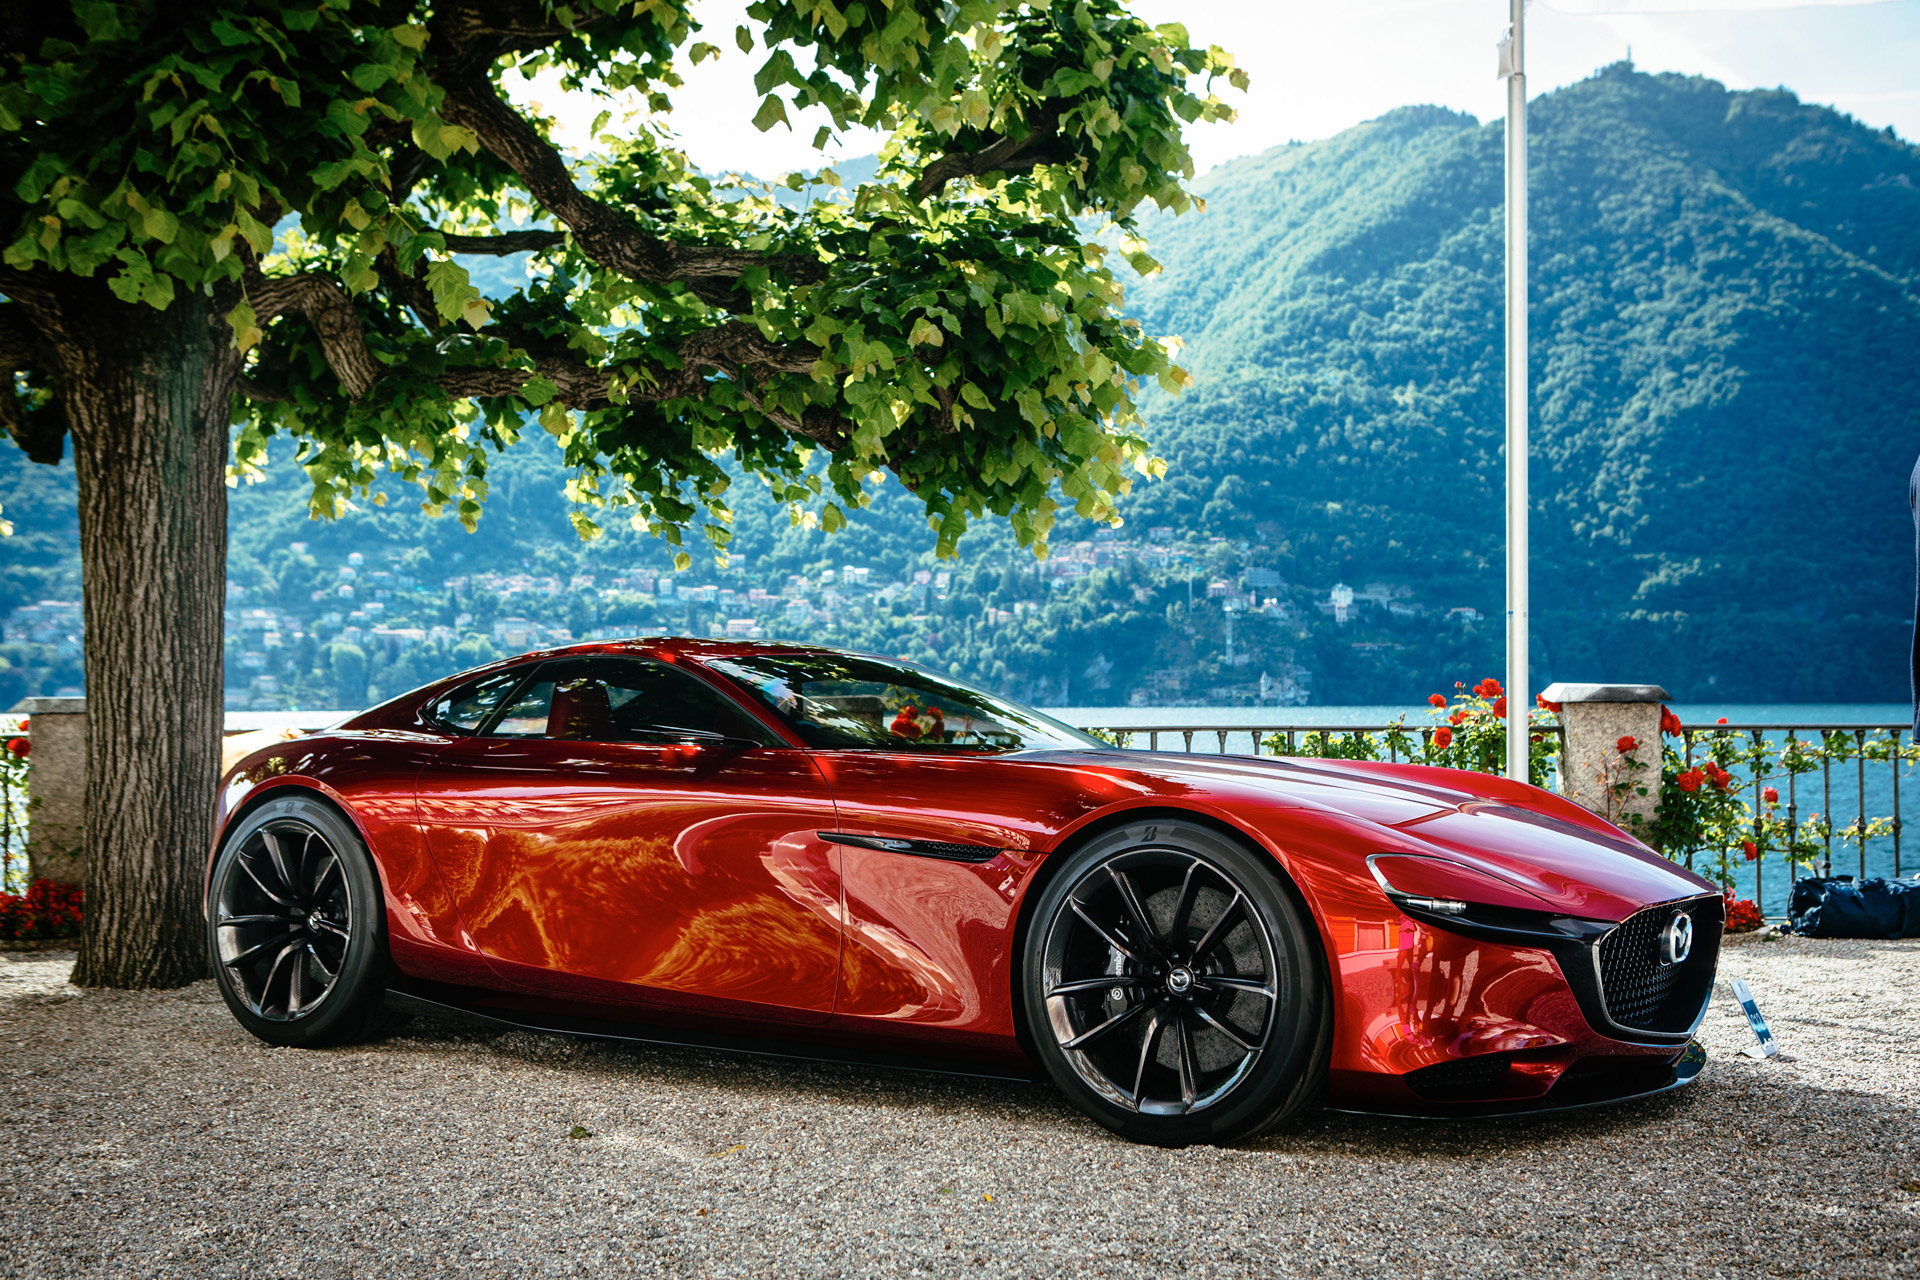 Hype Here Are Three Beautiful Mazda Rx Vision Concept Wallpapers